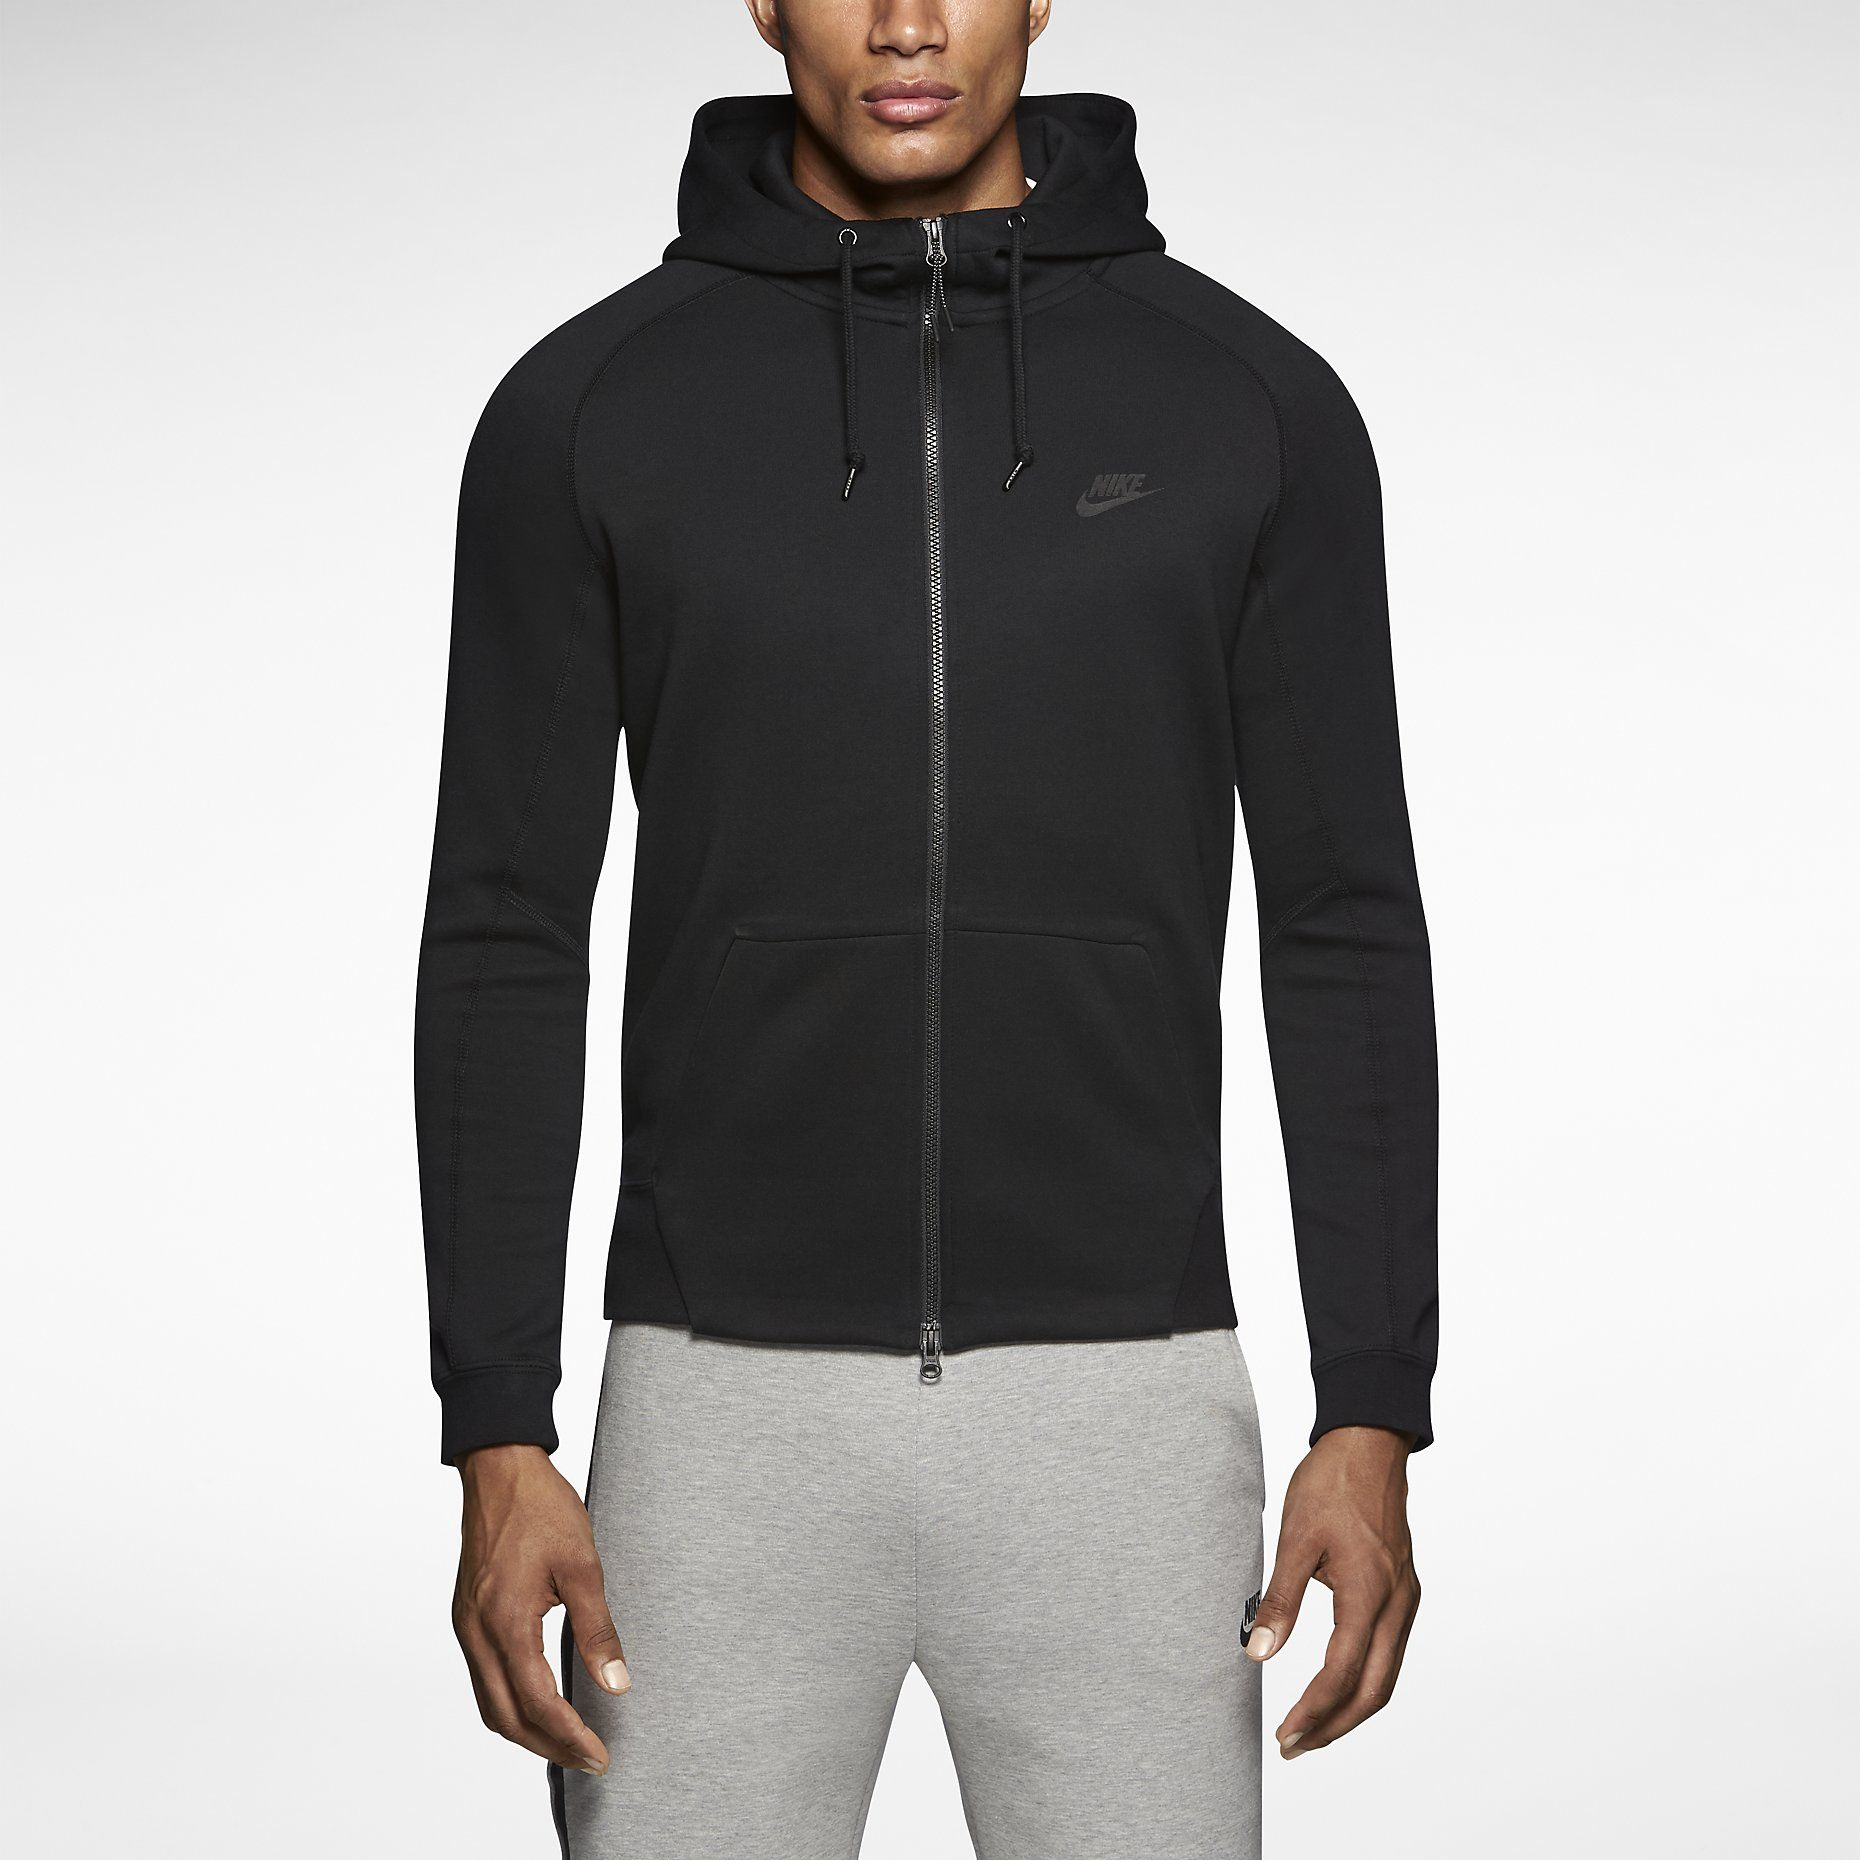 Nike Tech Fleece AW77 Men's Hoodie Black (With images